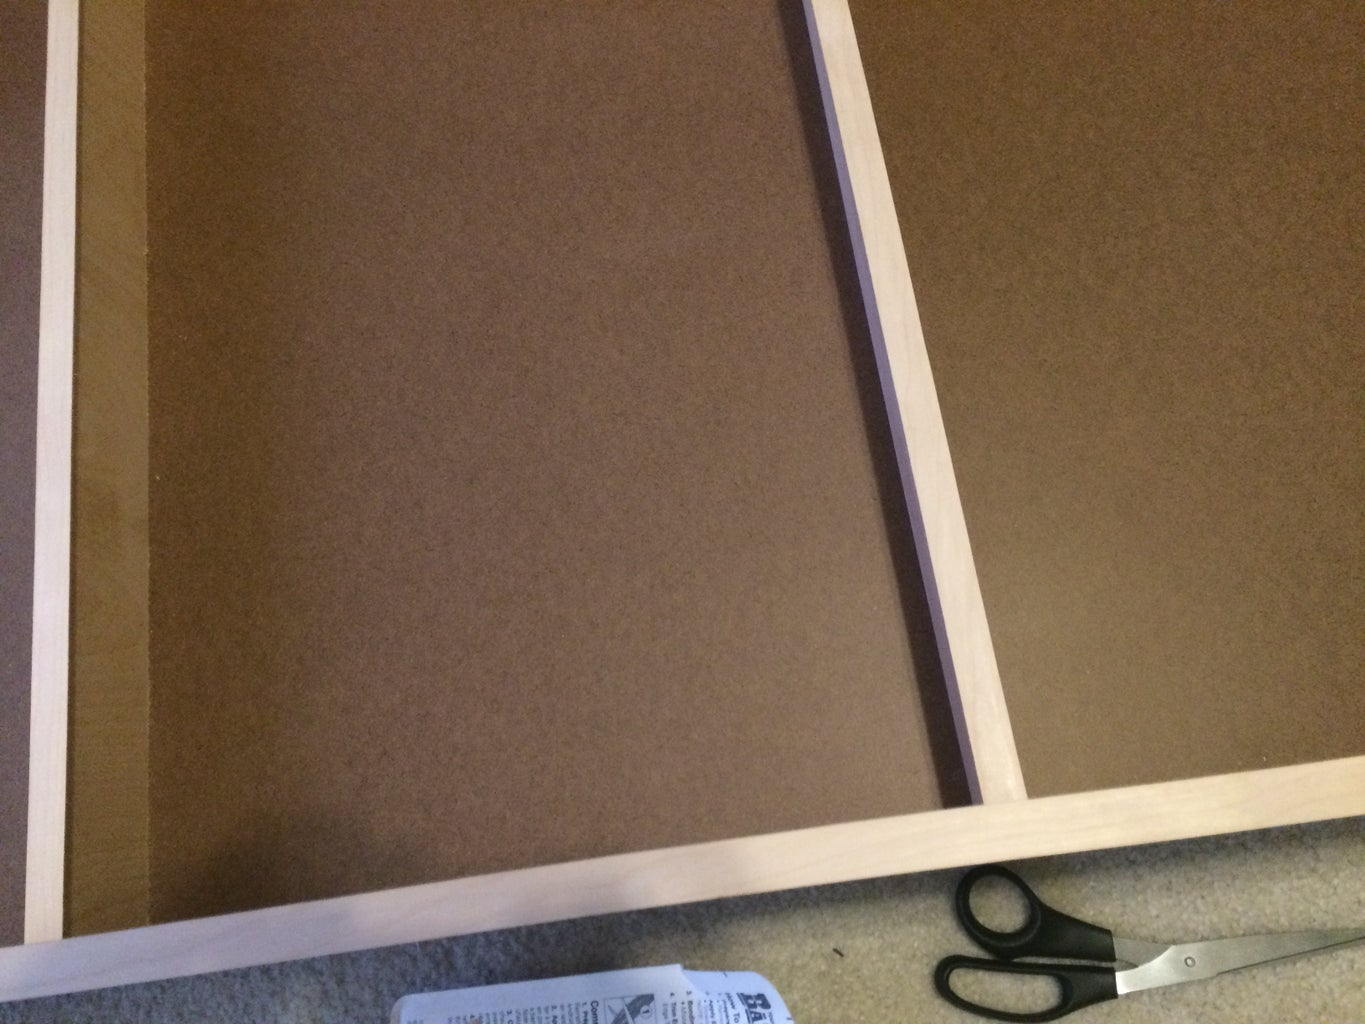 Optional - Stain or Paint the Box